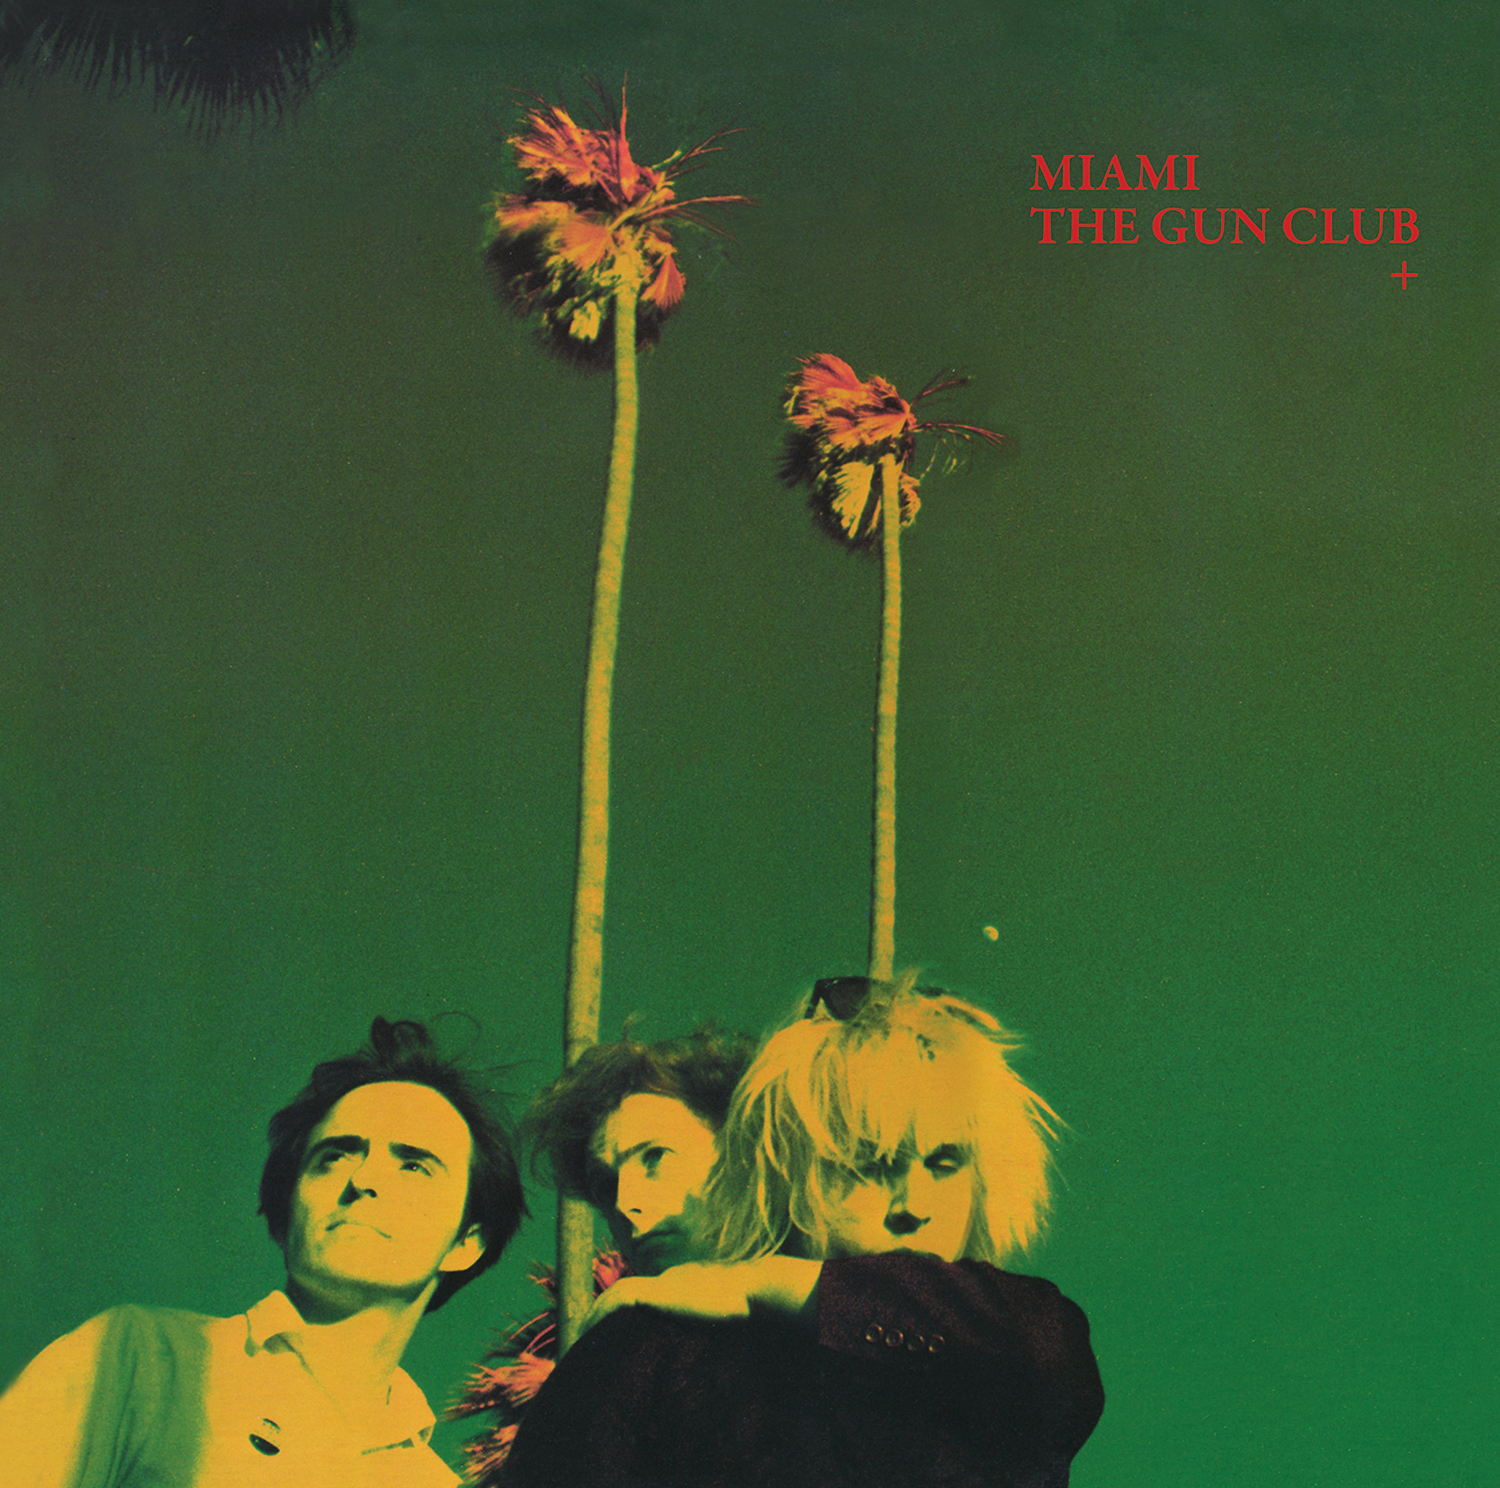 The Gun Club's 1982 Album Miami + Unreleased Tracks set for December 4 on 2xLP/2xCD from Blixa Sounds